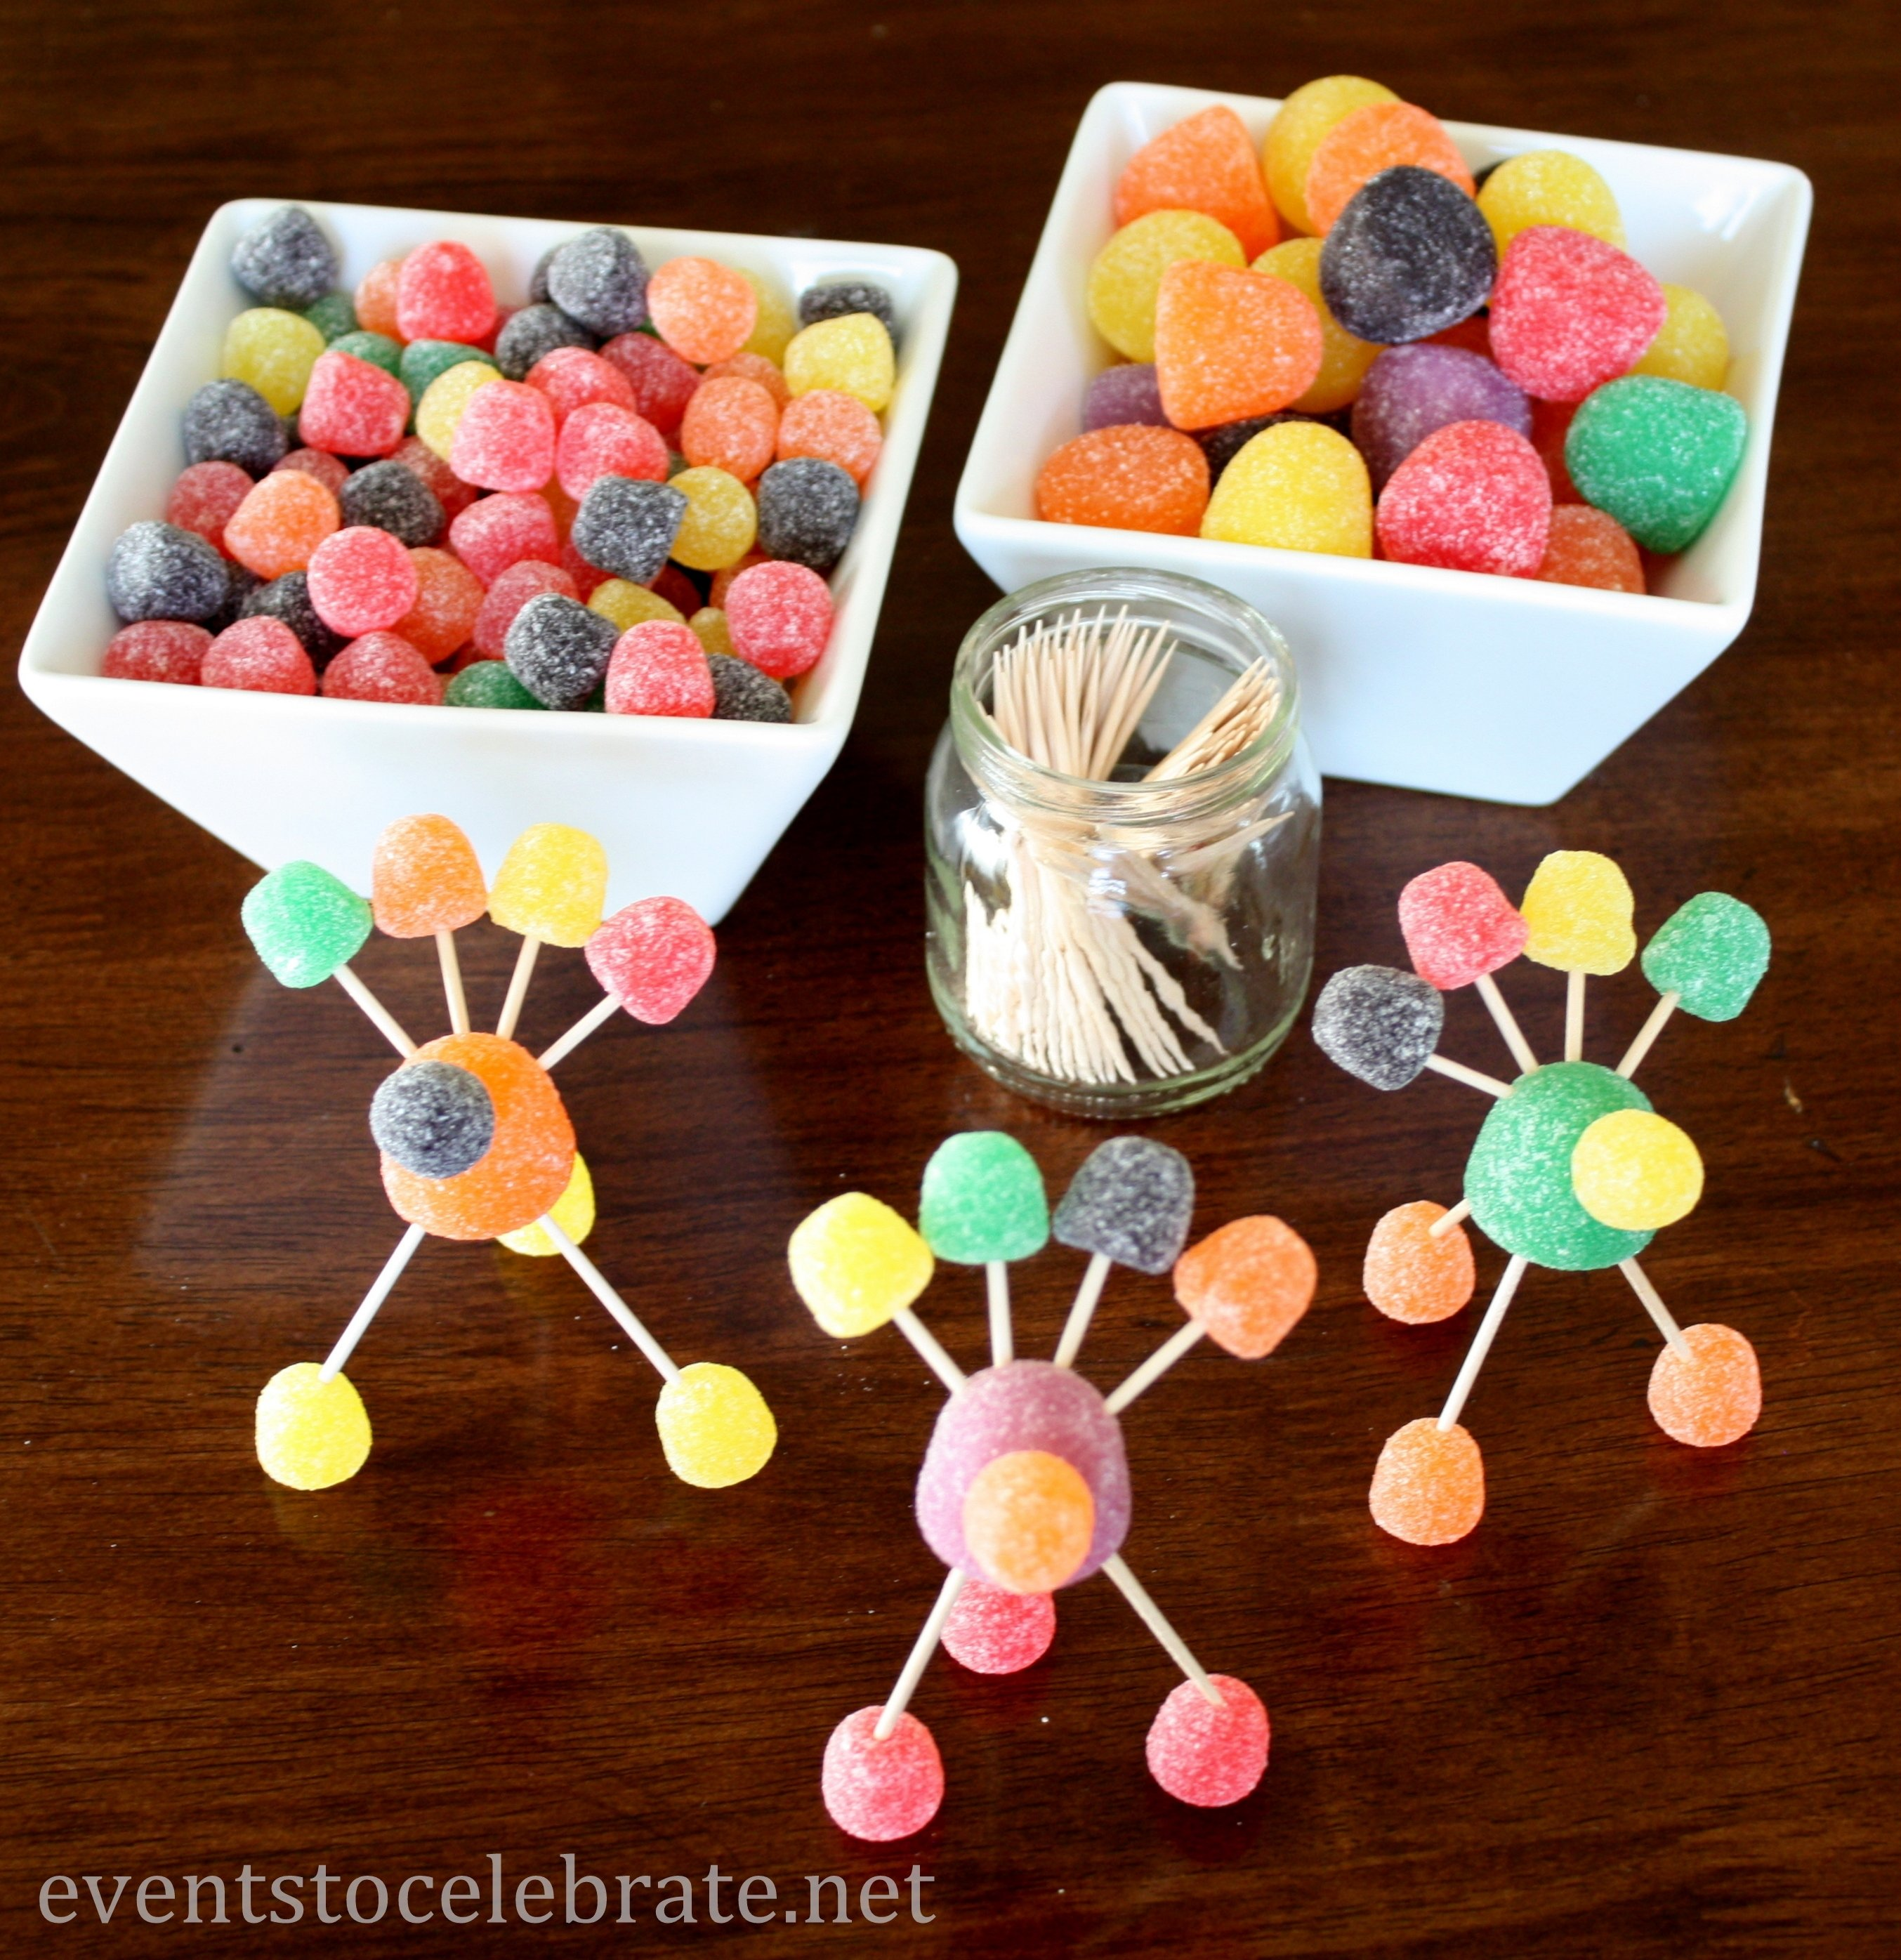 10 Nice Thanksgiving Party Ideas For Kids thanksgiving crafts for kids gumdrop turkeys events to celebrate 2020